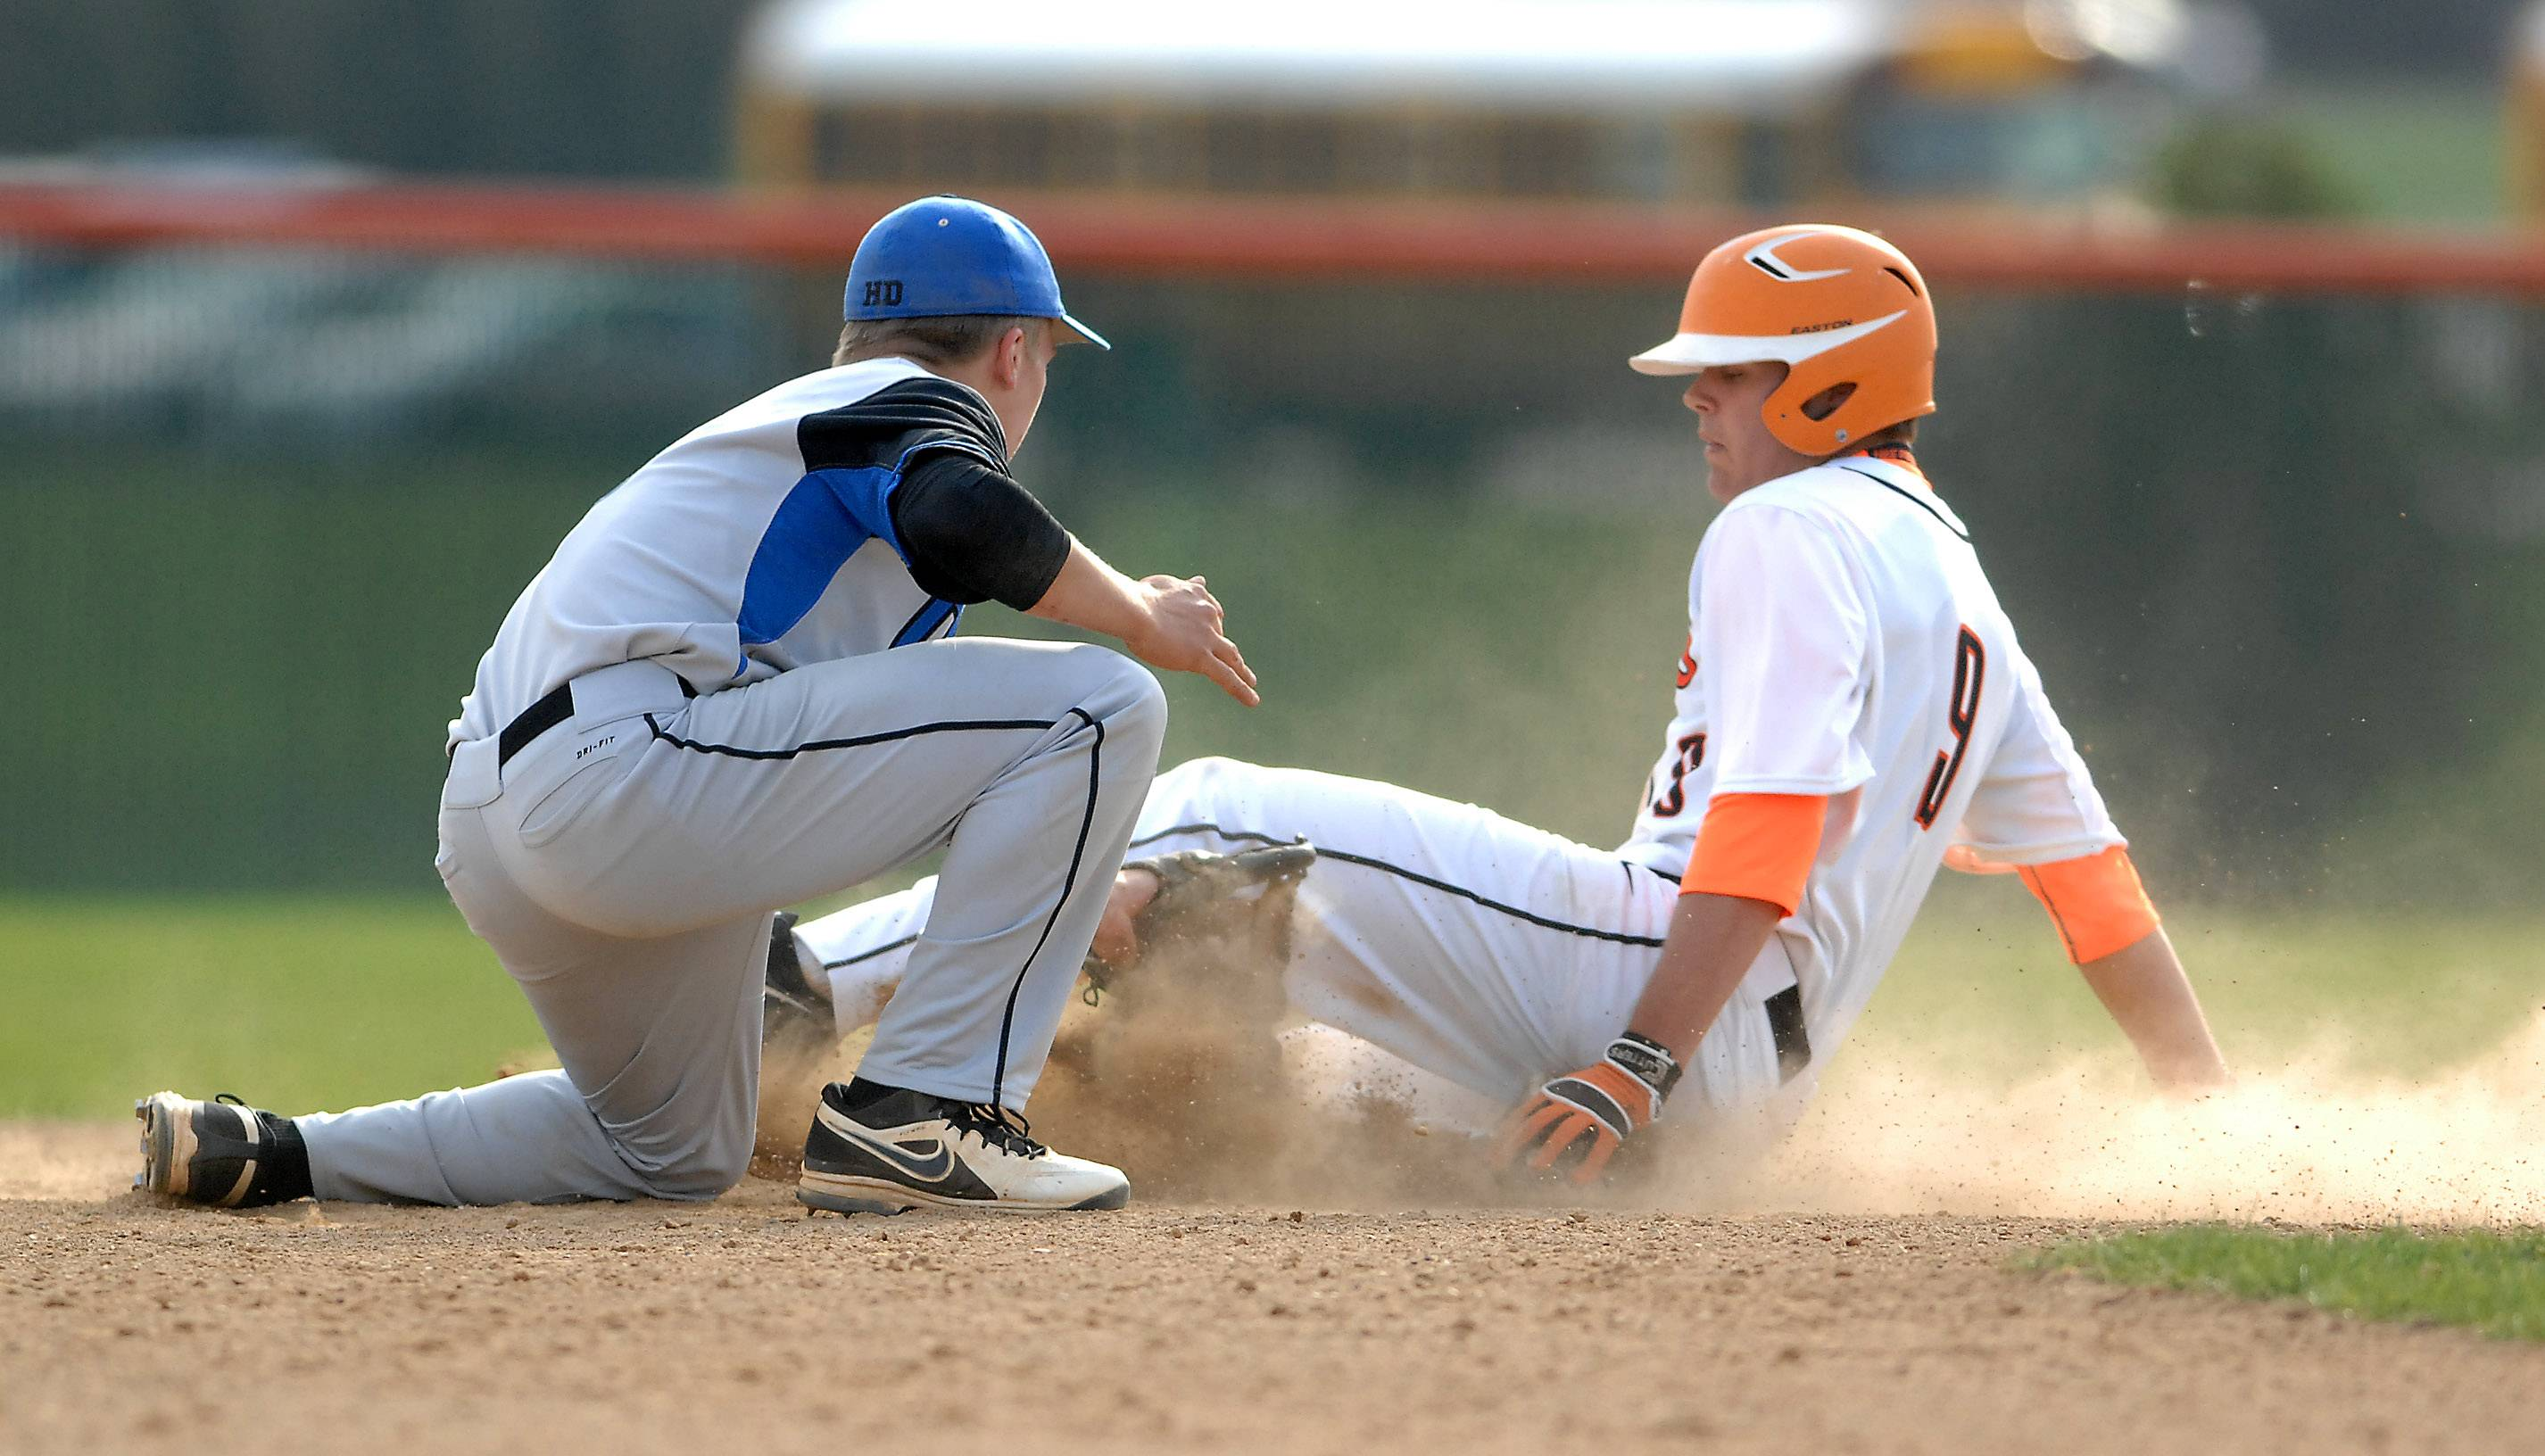 St. Charles East's Erik Anderson (9) slides safely into second with a steal after the ball got under the glove of St. Charles North's Riley Coomes (16) during Tuesday's game at St. Charles East.